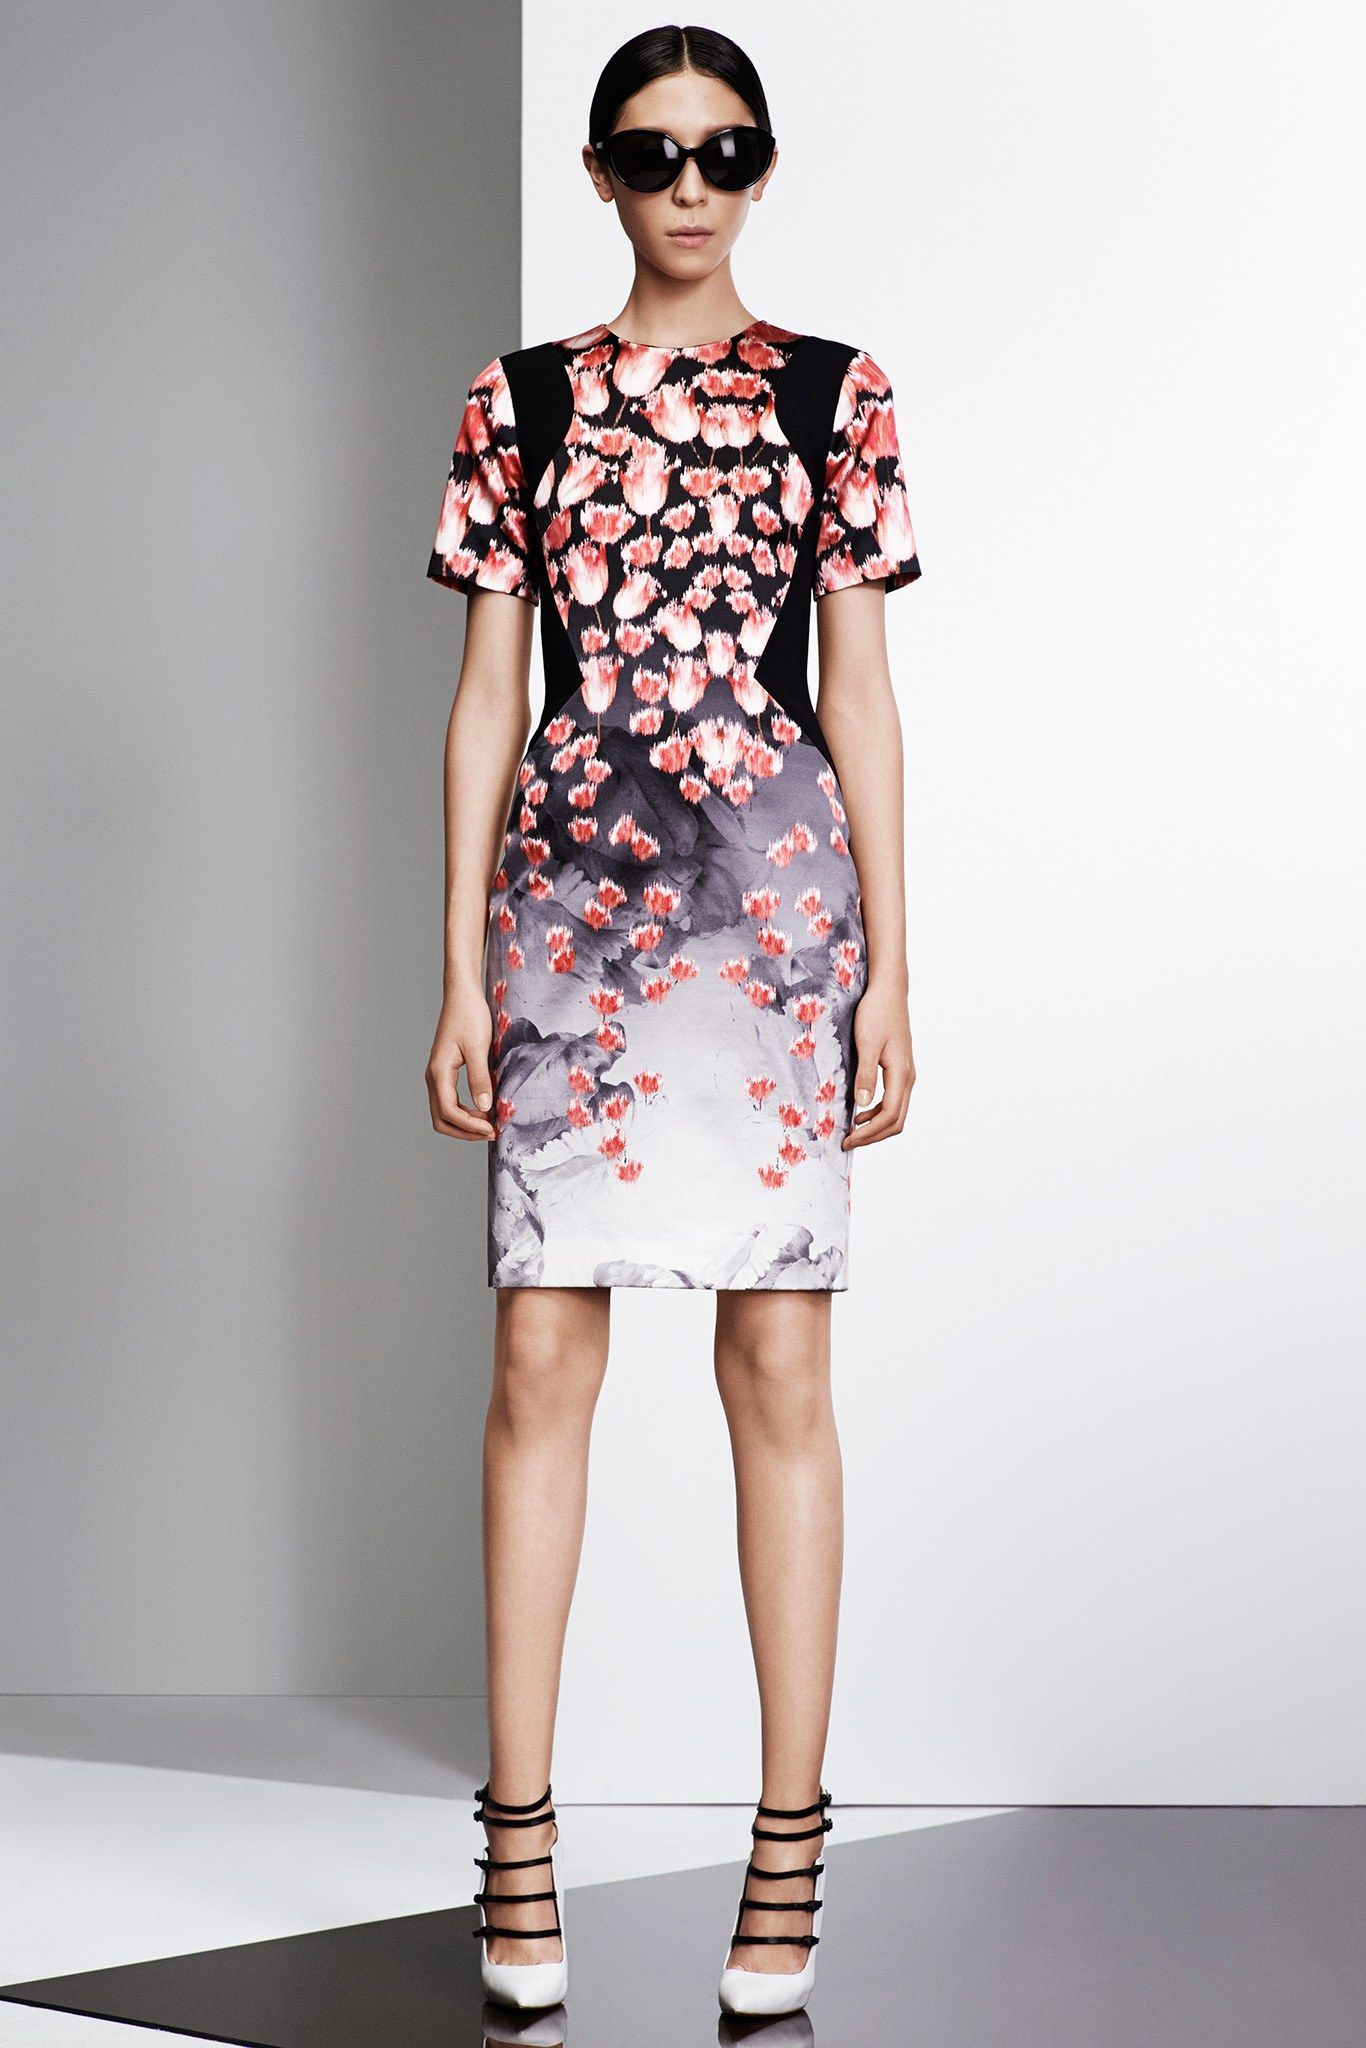 Prabal Gurung Pre-Fall 2015 Fashion Show